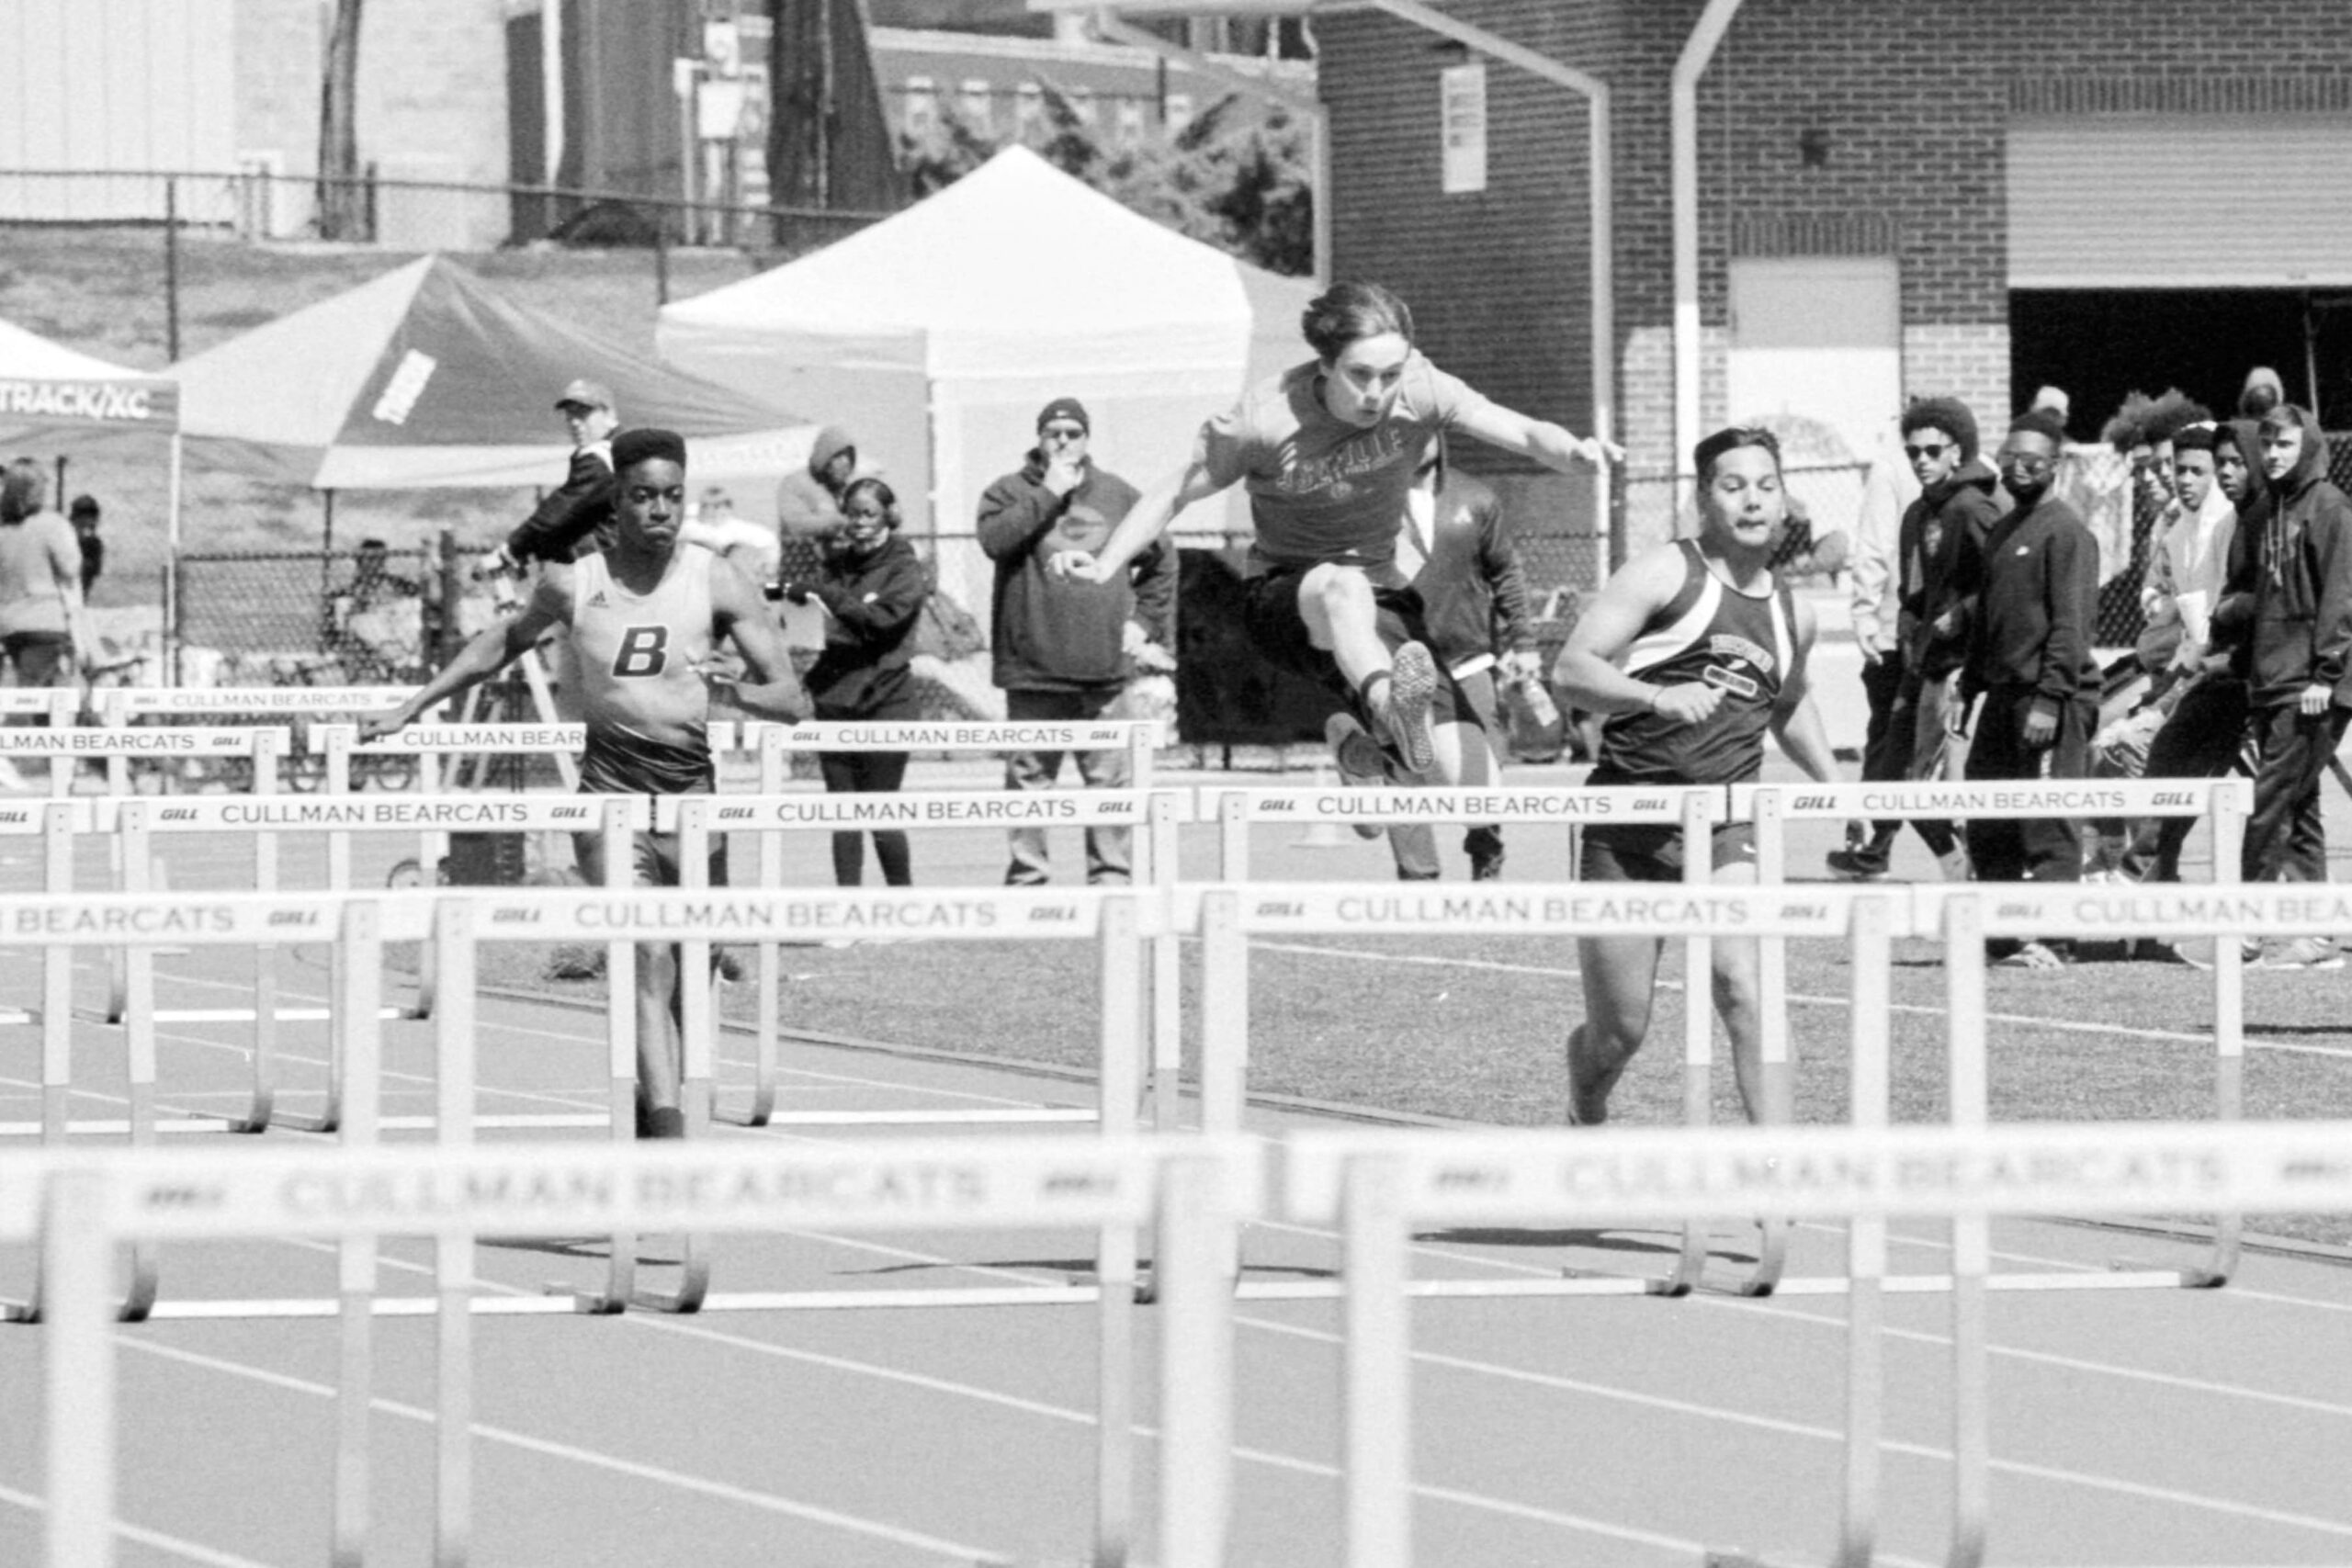 @bsanfordjr · 22h Replying to @ILFORDPhoto Fierce competition at the Cullman Classic track meet on March 20th 2021, Cullman Alabama US. Kentmere 400 developed in DD-X (1+4). #fiercefilm #ilfordphoto #fridayfavourites